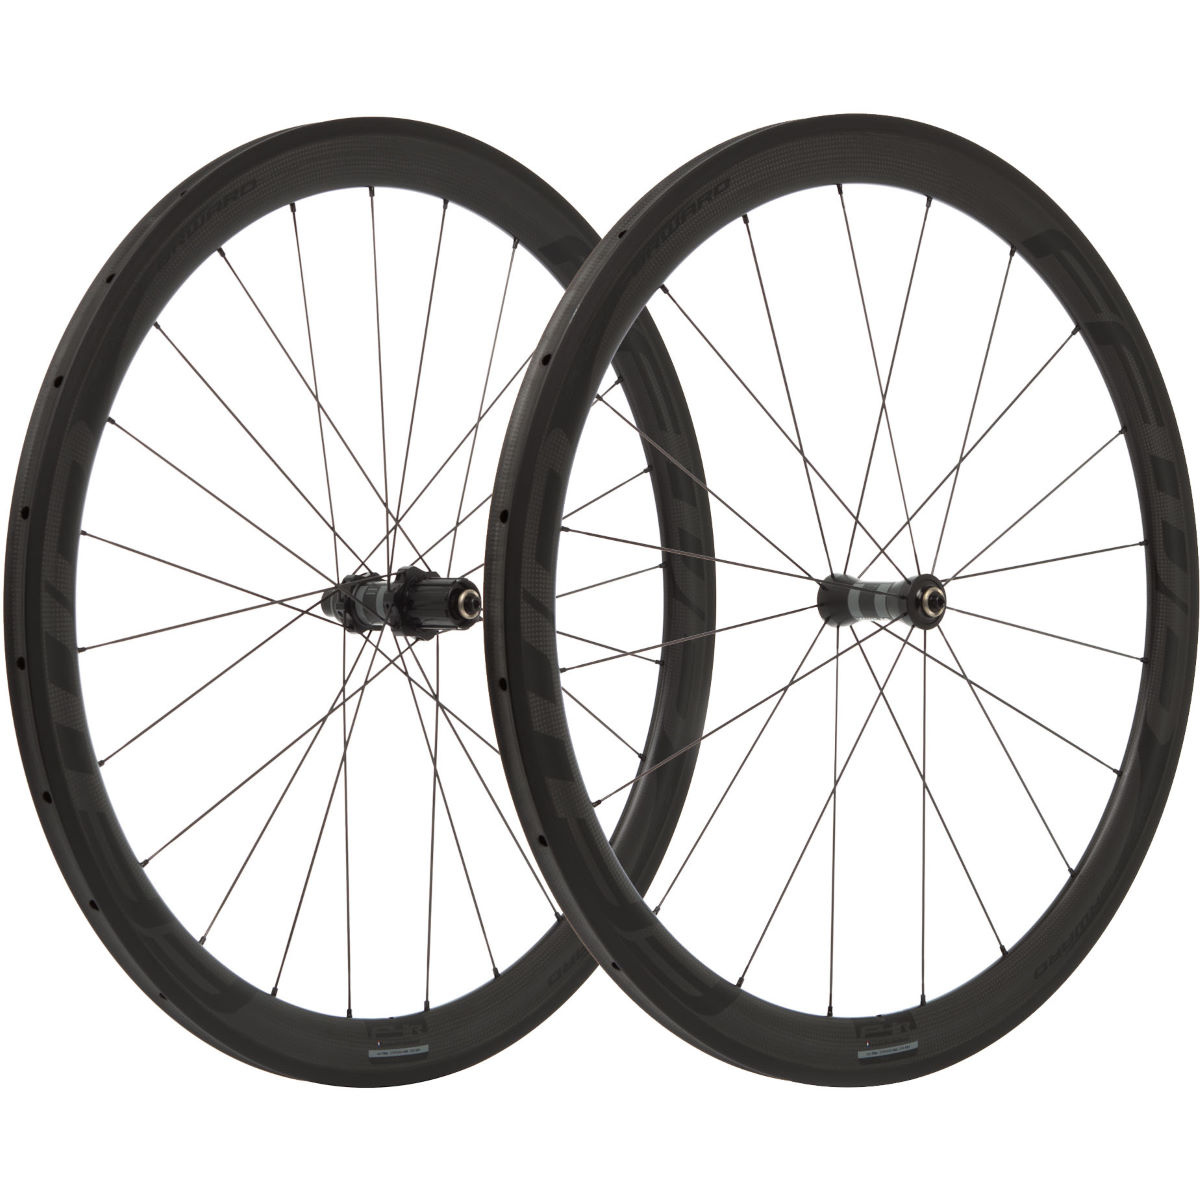 Fast Forward Carbon F4 Tubular 45mm SP Wheelset - Ruedas de competición